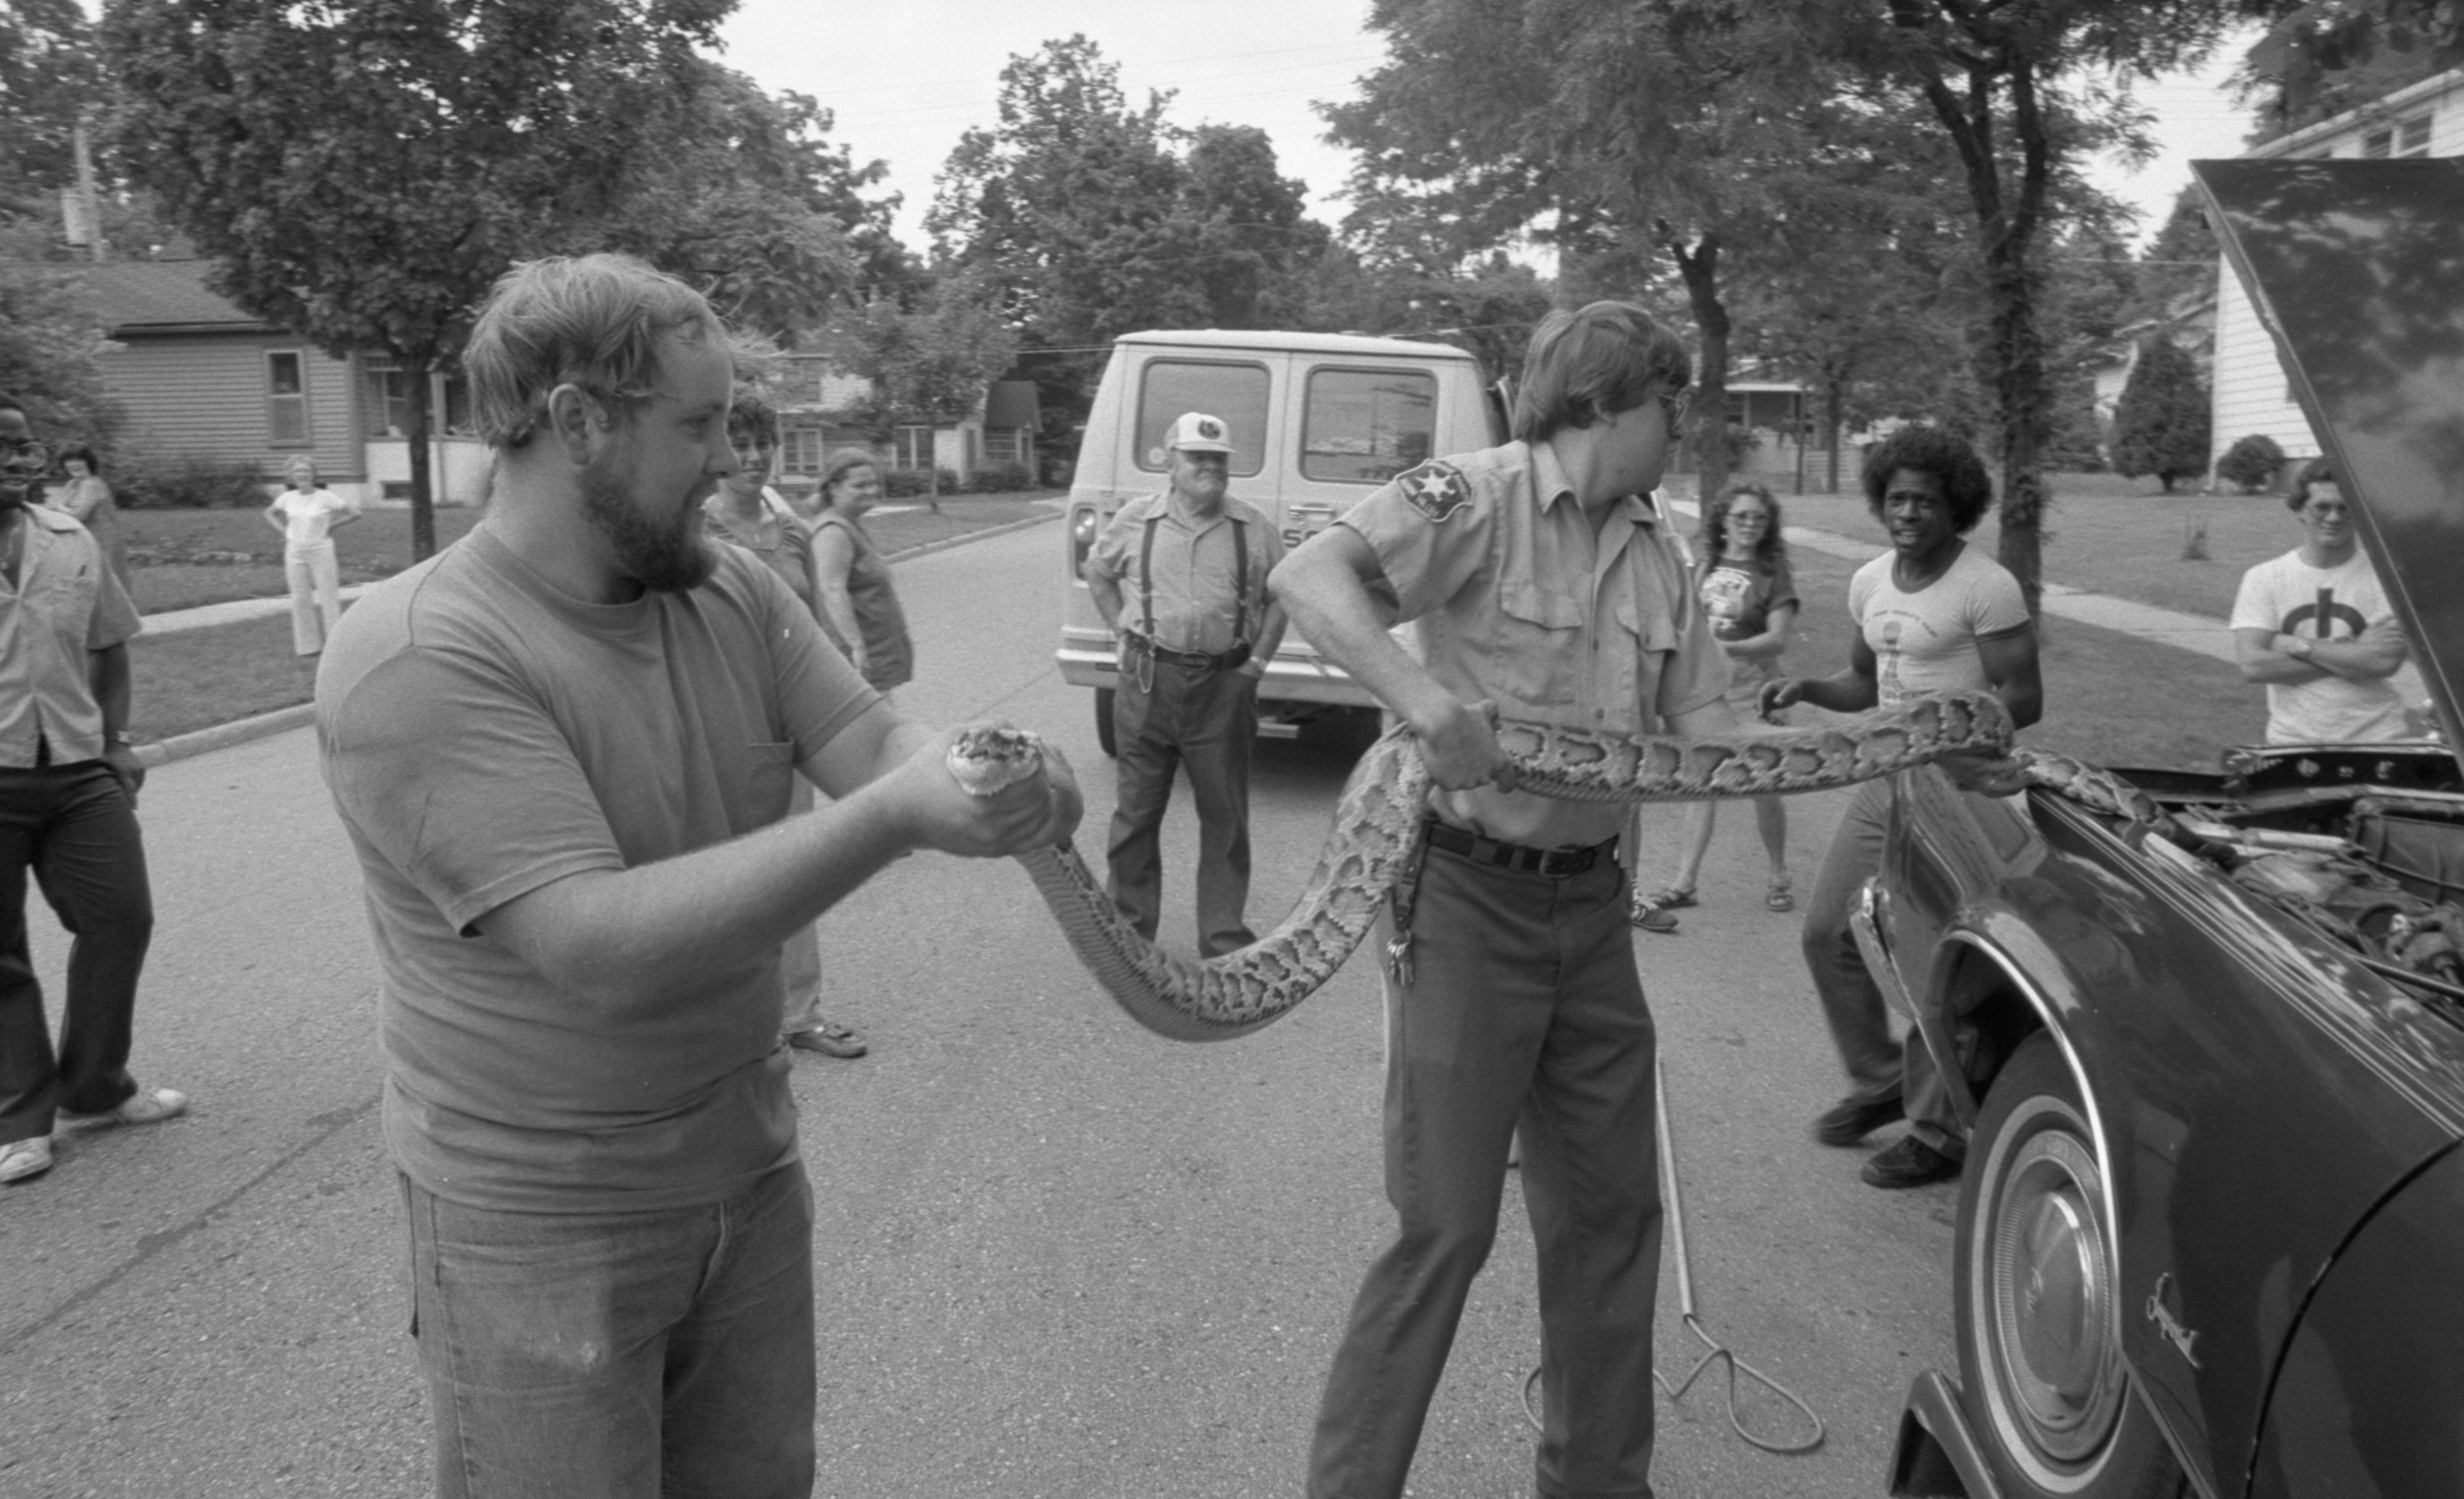 Humane Society Employees Remove A Python From The Engine Of A Car, August 1983 image